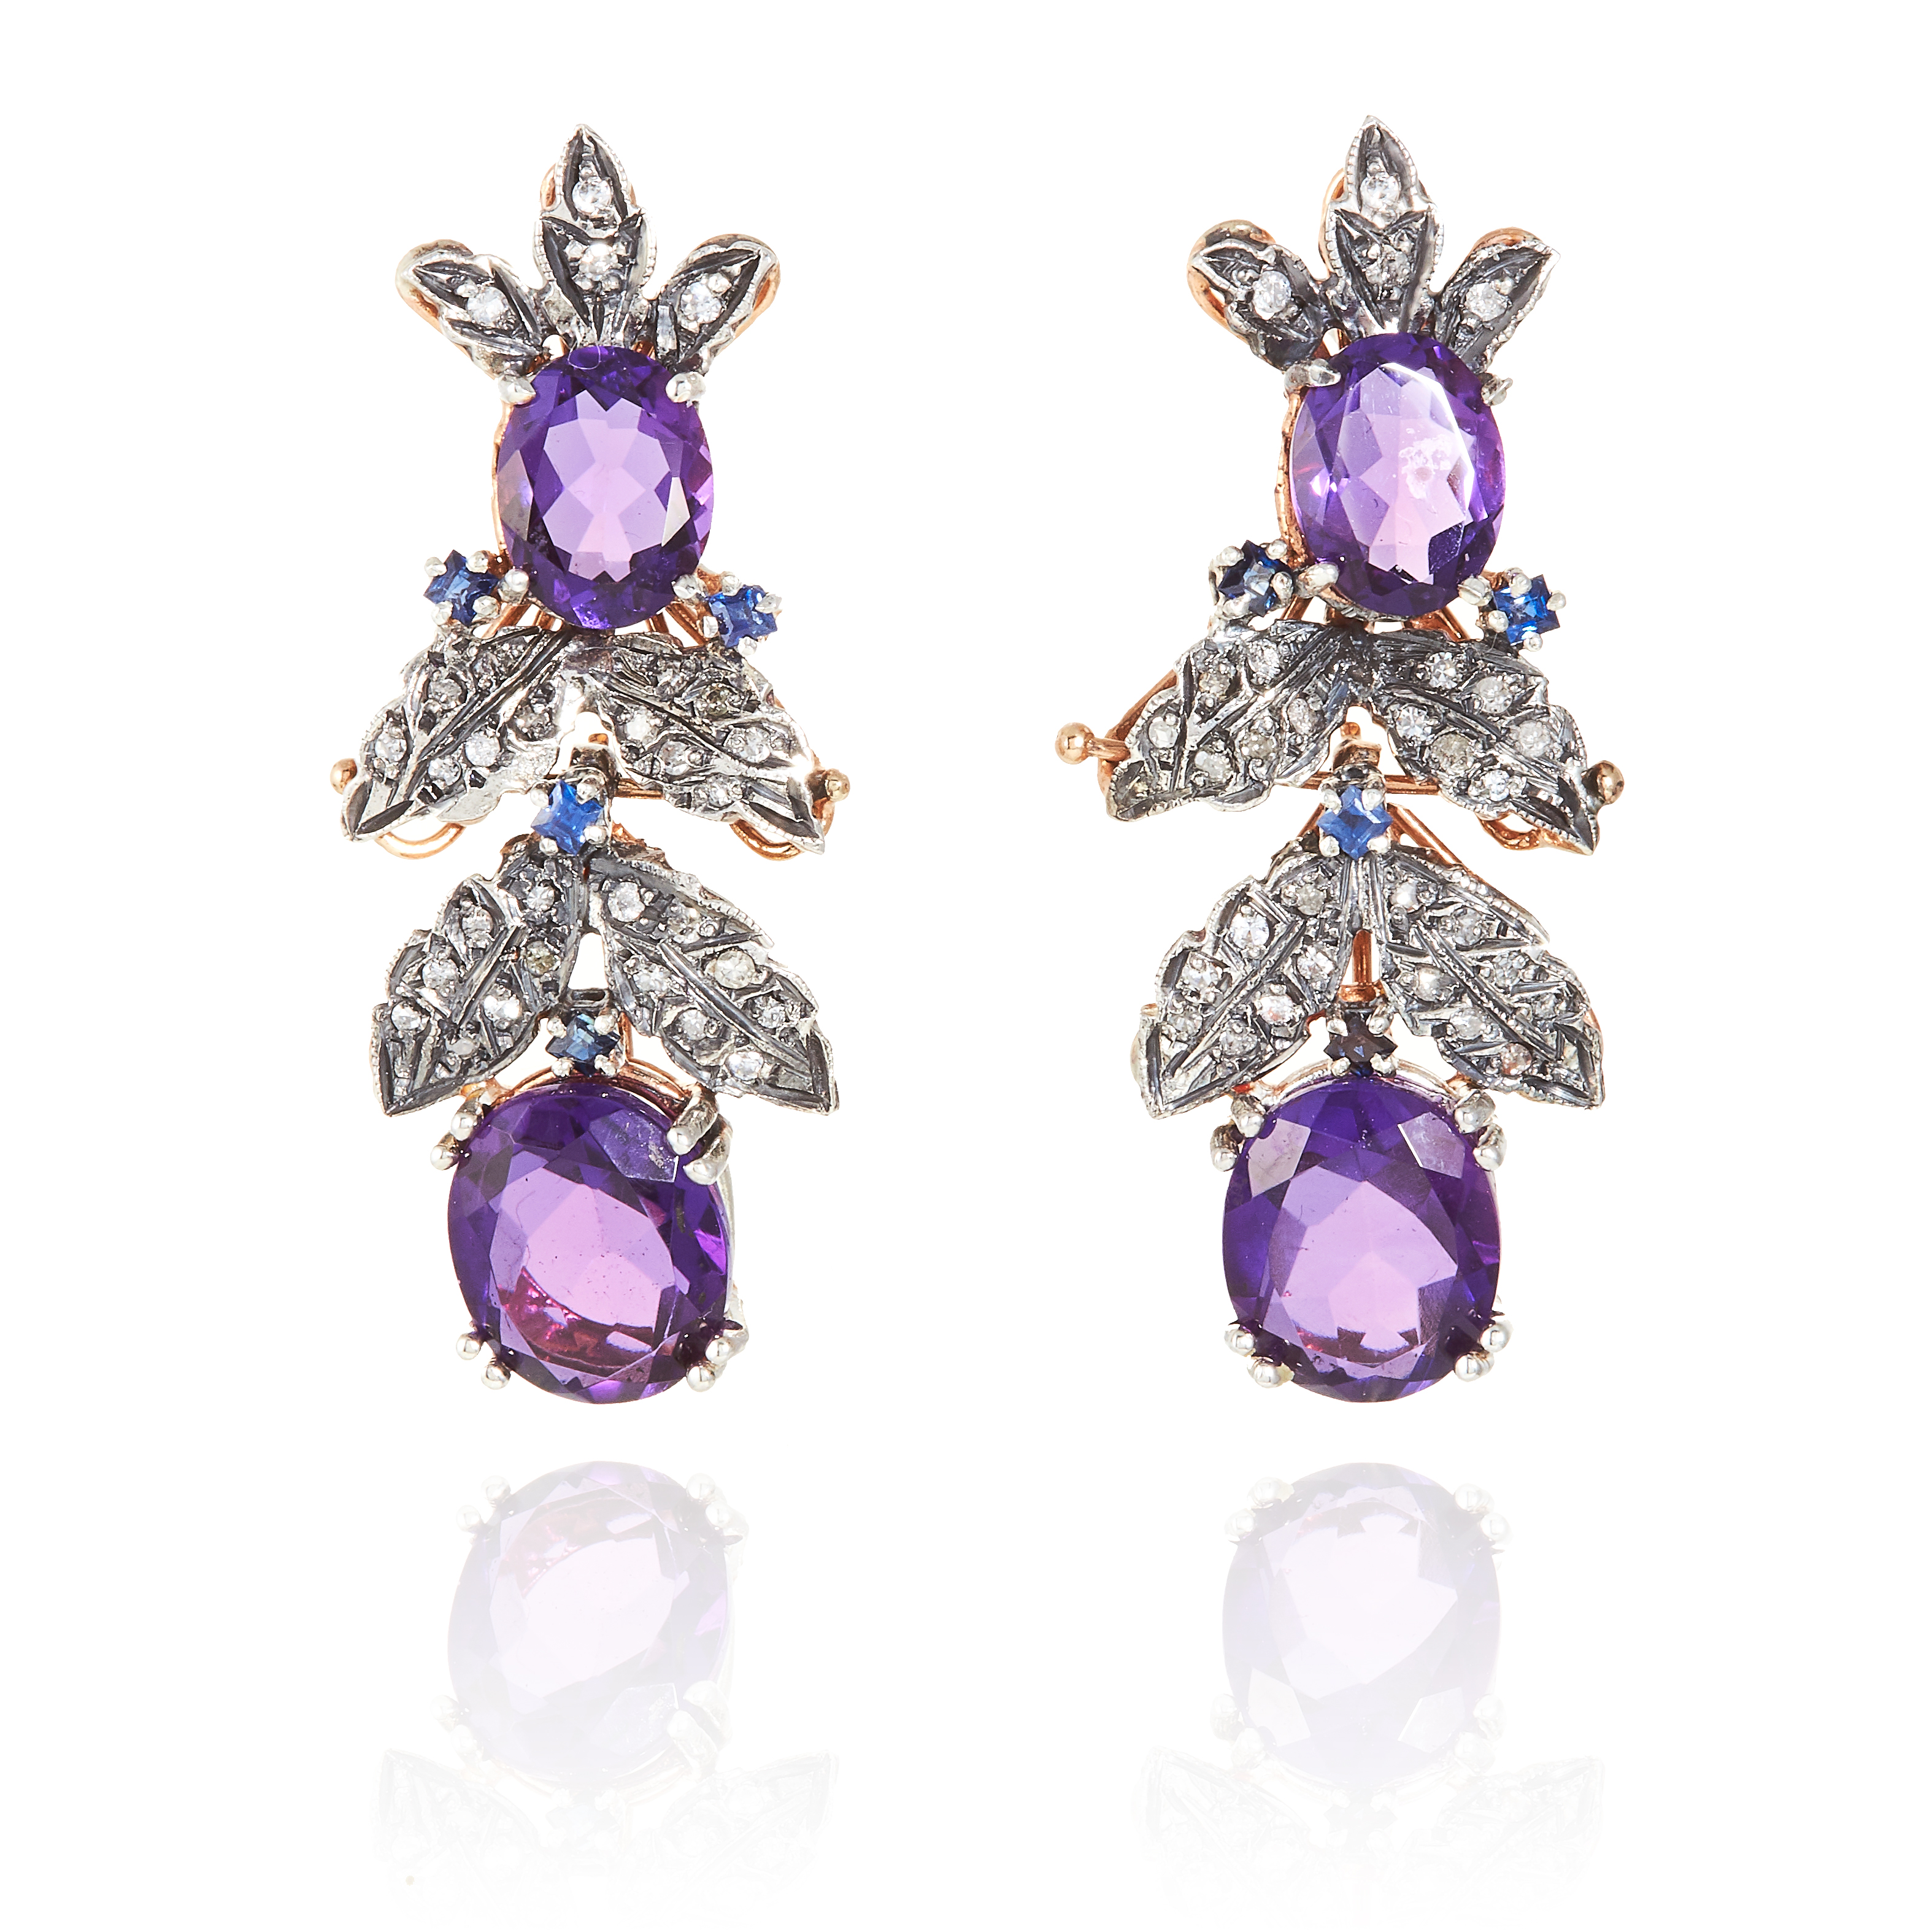 Los 34 - A PAIR OF ANTIQUE AMETHYST, DIAMOND AND SAPPHIRE EARRINGS in yellow gold and silver, the articulated